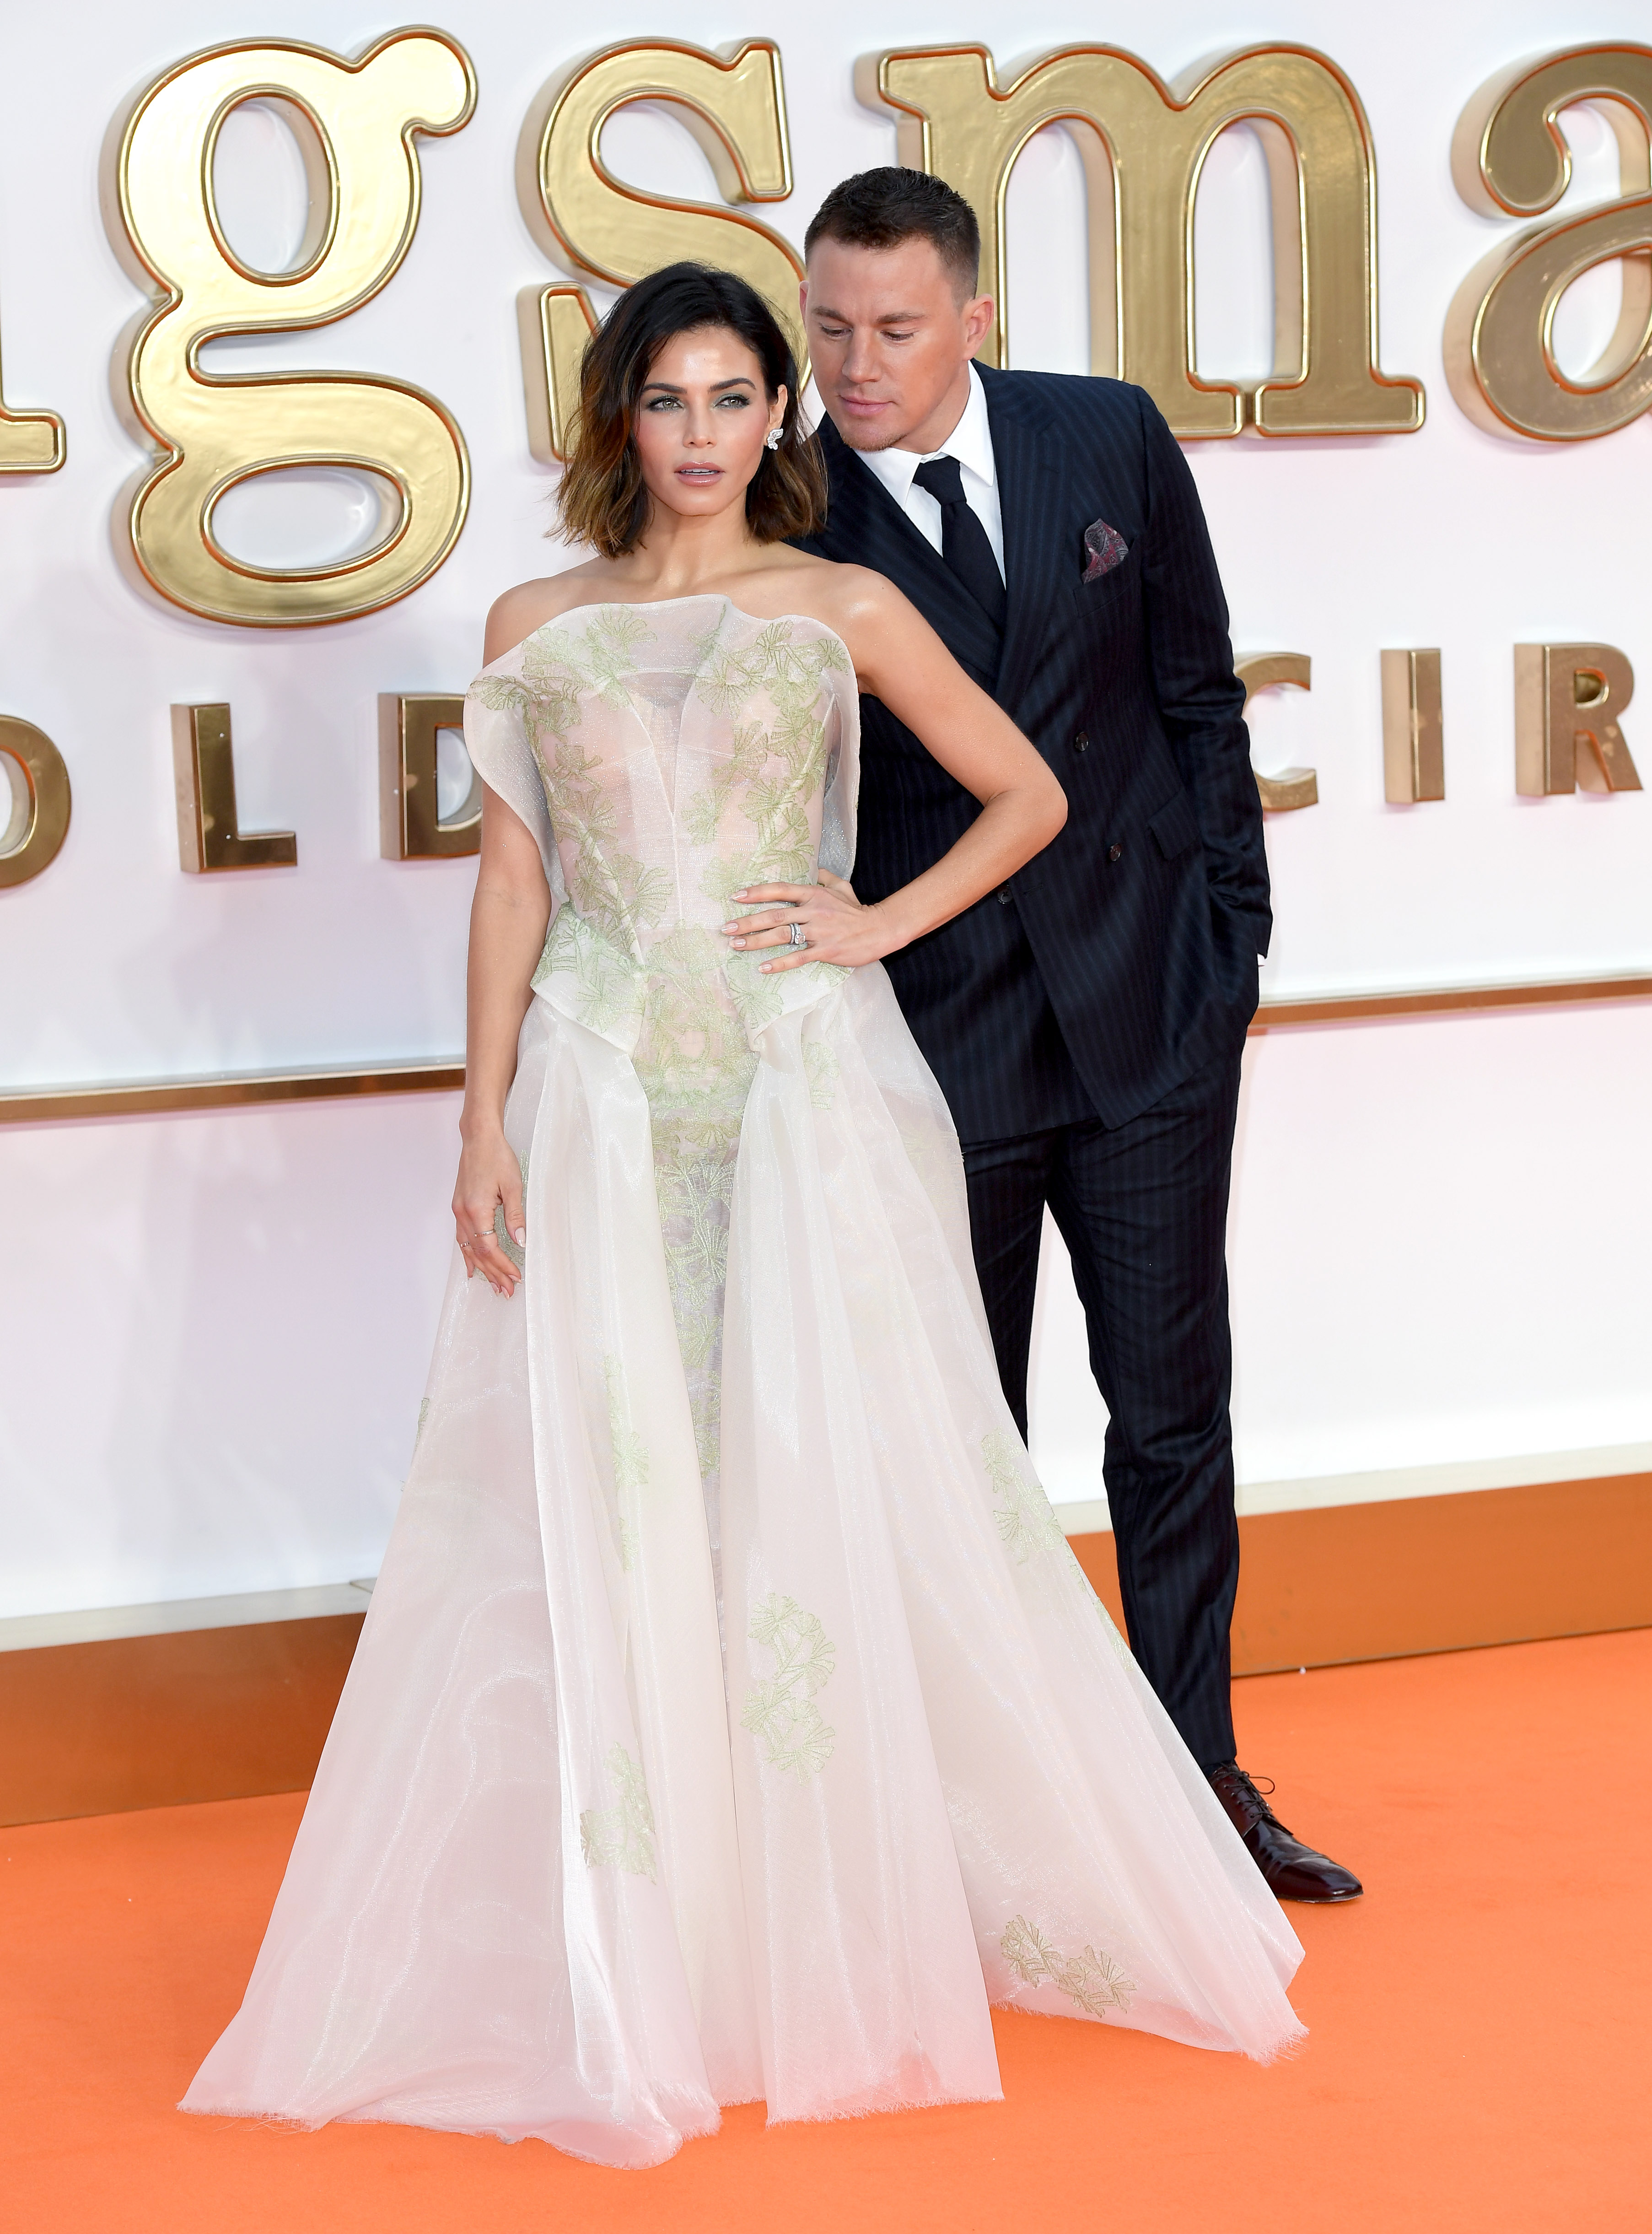 LONDON, ENGLAND - SEPTEMBER 18: Jenna Dewan Tatum and Channing Tatum attend the 'Kingsman: The Golden Circle' World Premiere at Odeon Leicester Square on September 18, 2017 in London, England. (Photo by Karwai Tang/WireImage)